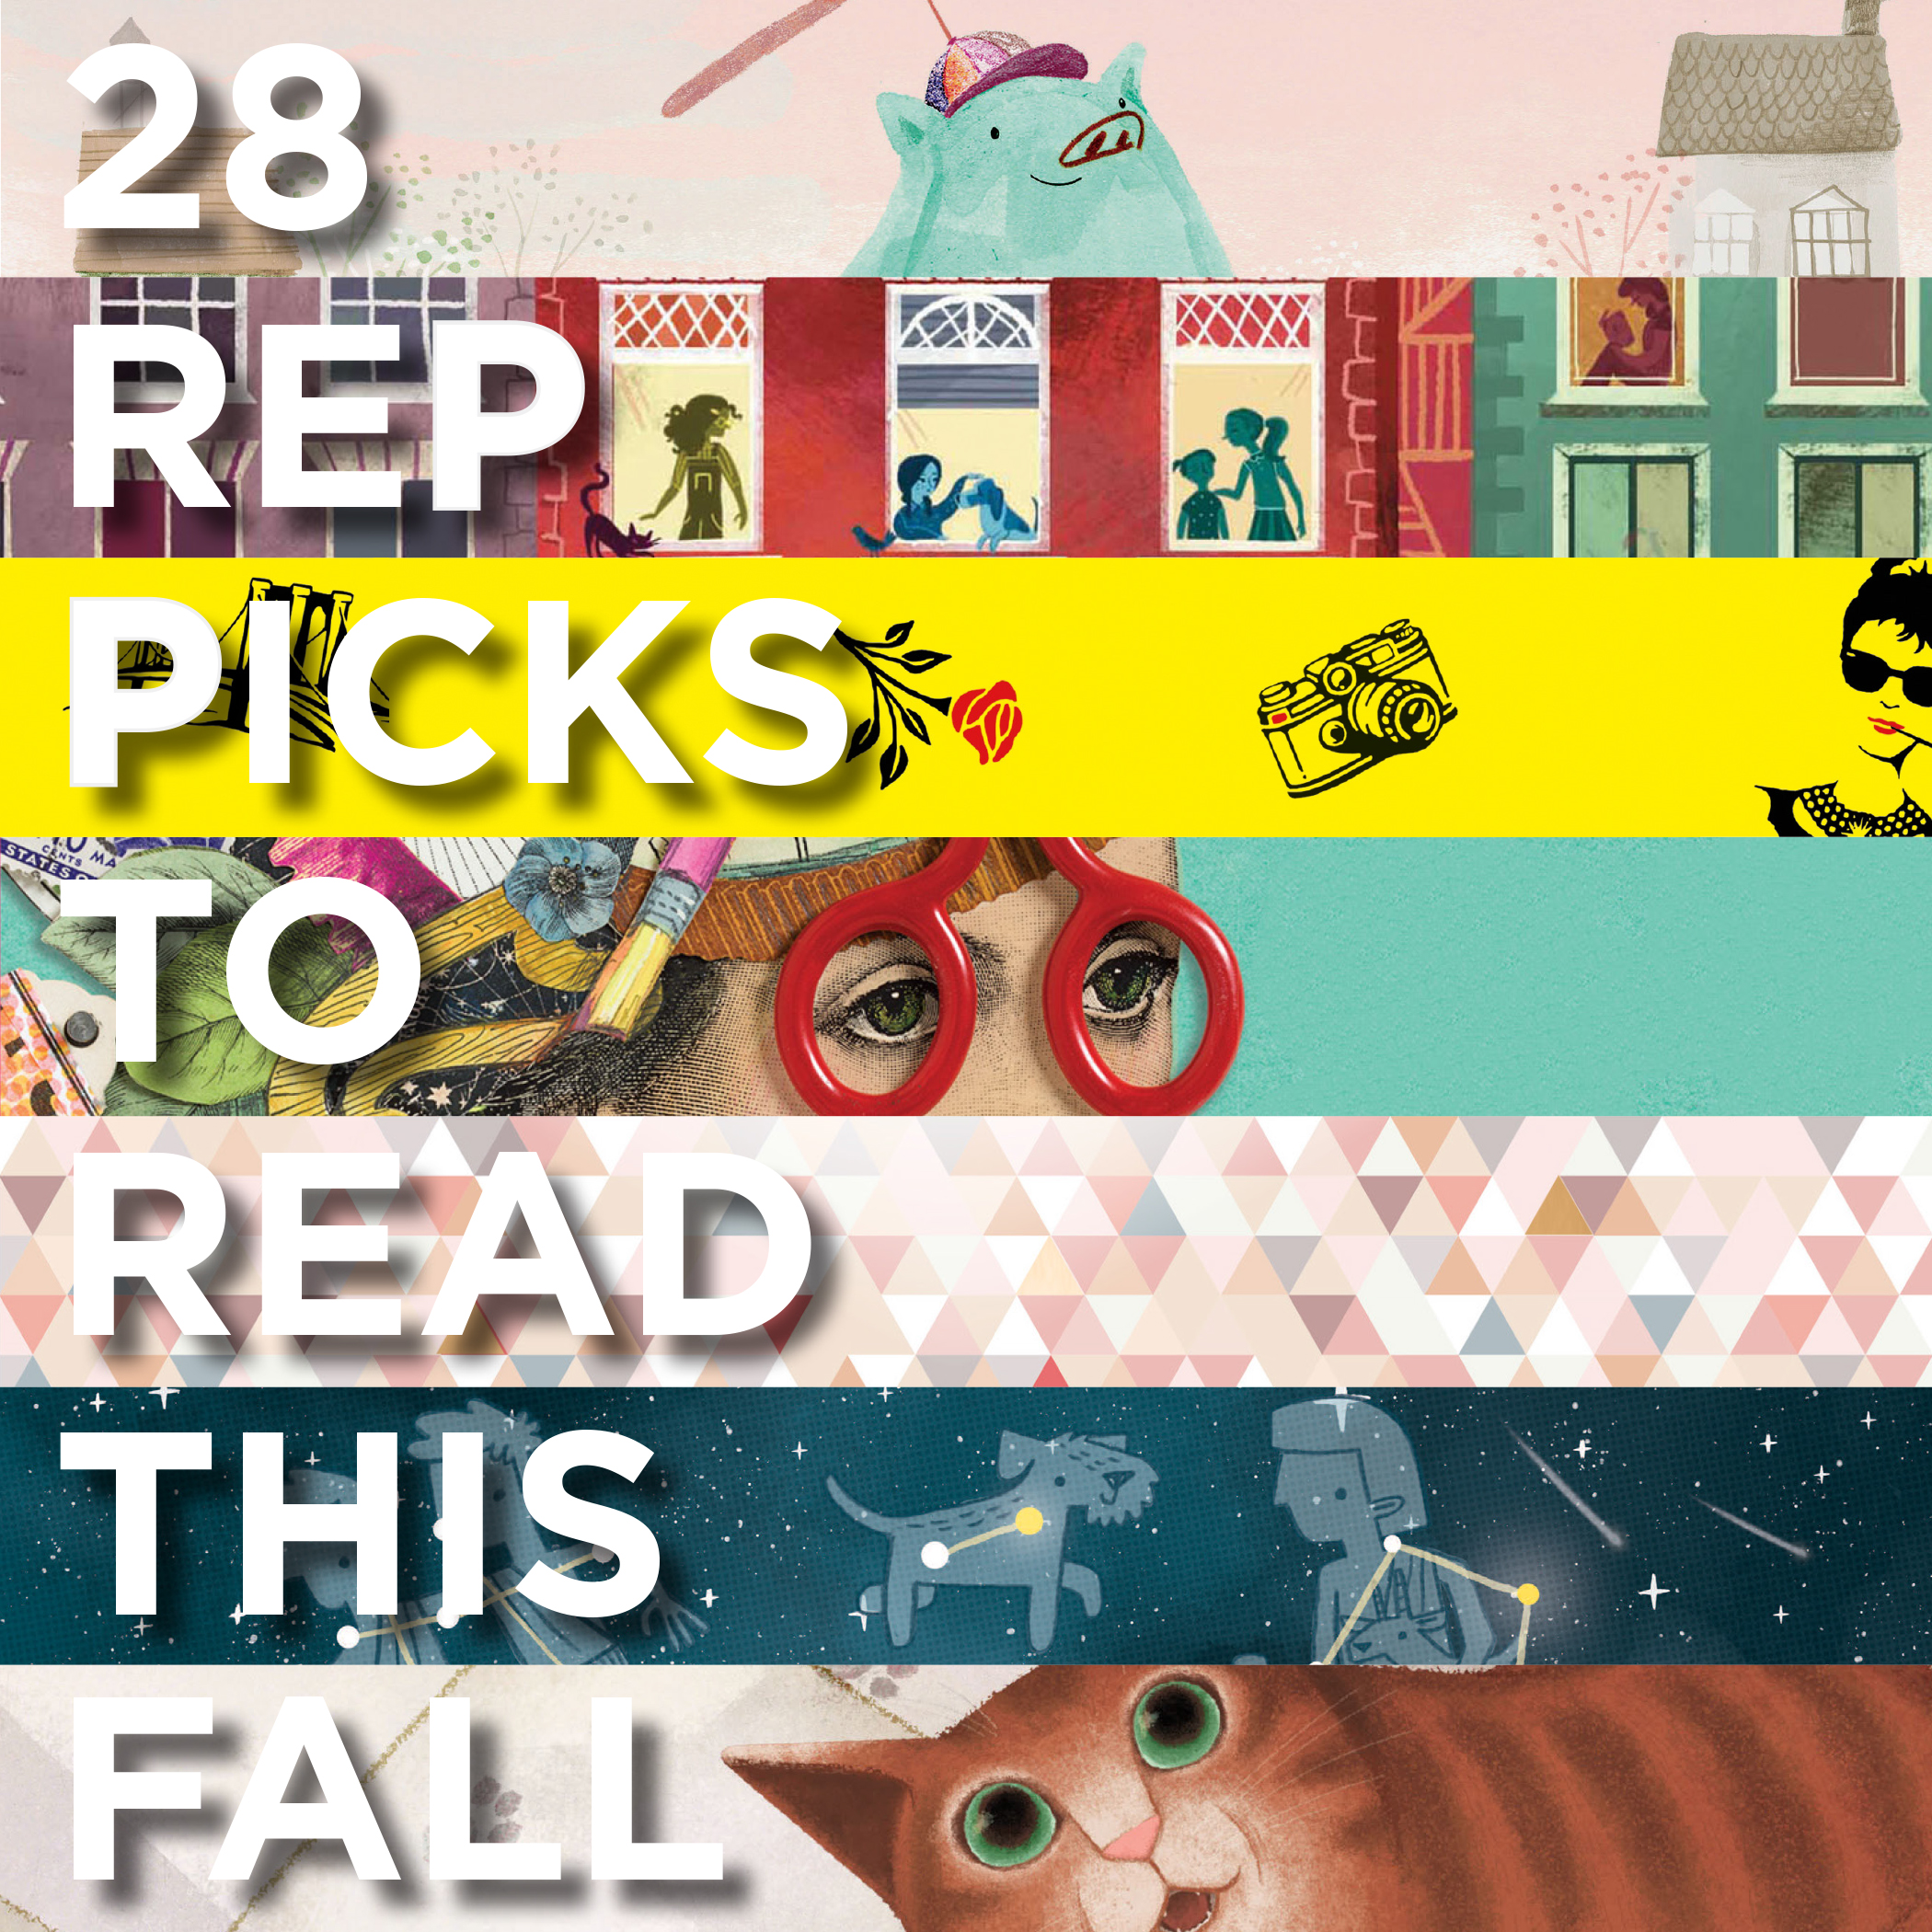 28 Rep Picks To Read This Fall Blog Raincoast Books Sticker Activity My Big And Mighty Its Which Means Time Cuddle Up With Some Of Our Favourite Titles The Season Check Out These 2018 From Sales Reps